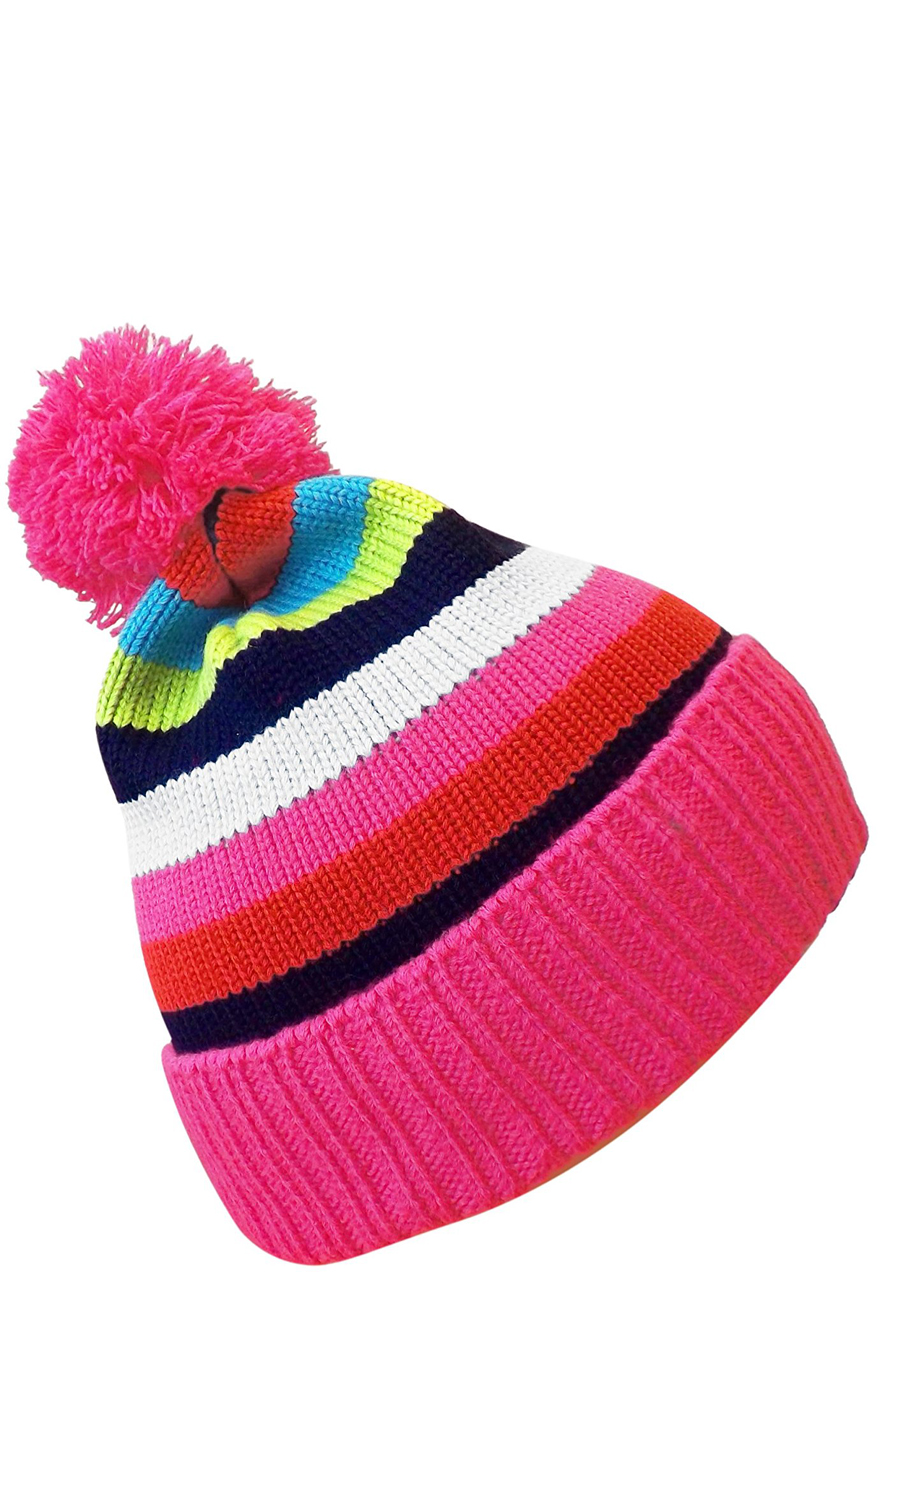 28fa1314775 Classic Warm Adorable Kids Striped Cable Knit Winter Pom Pom Hat Pink